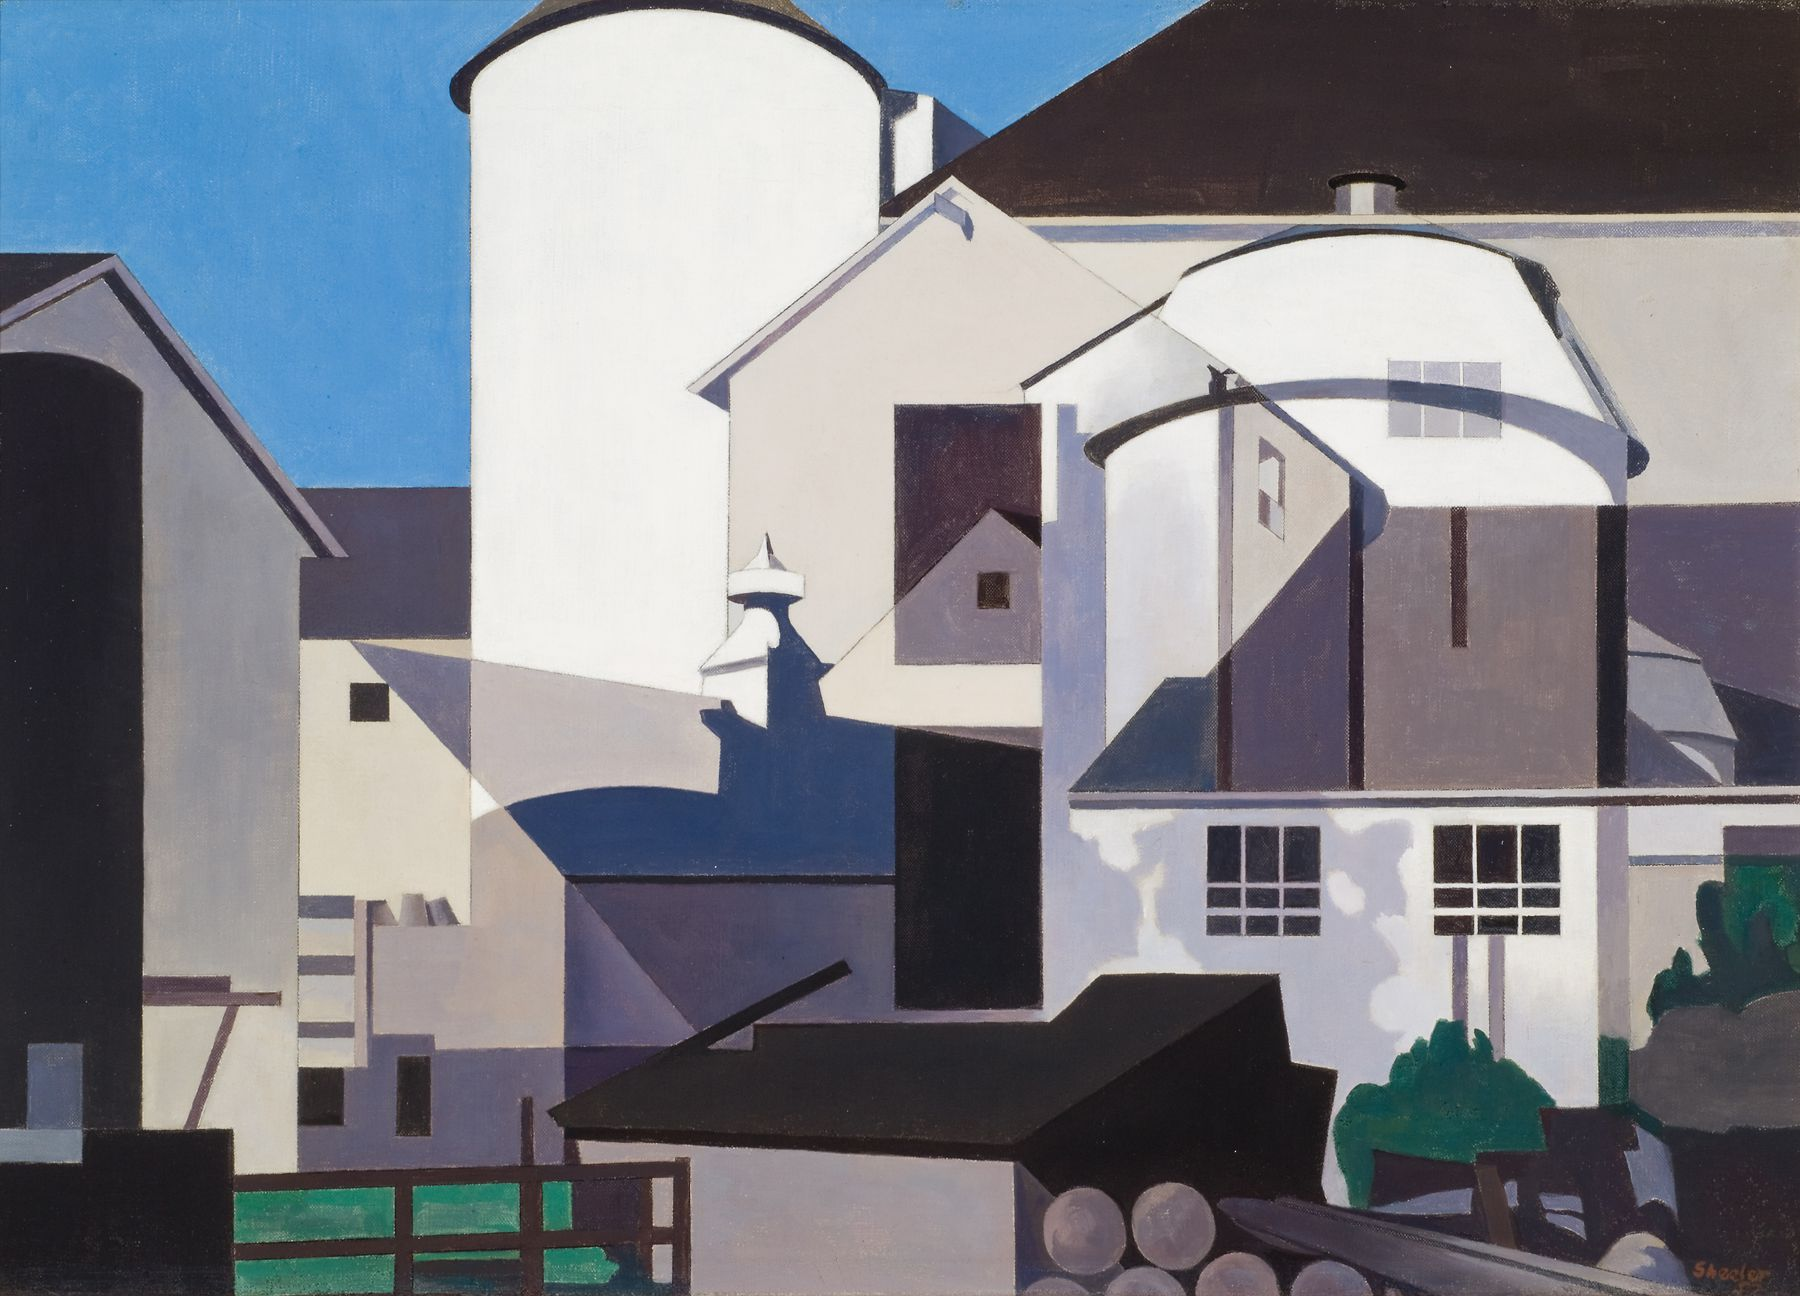 Conversation Piece by Charles Sheeler - Scott Livengood